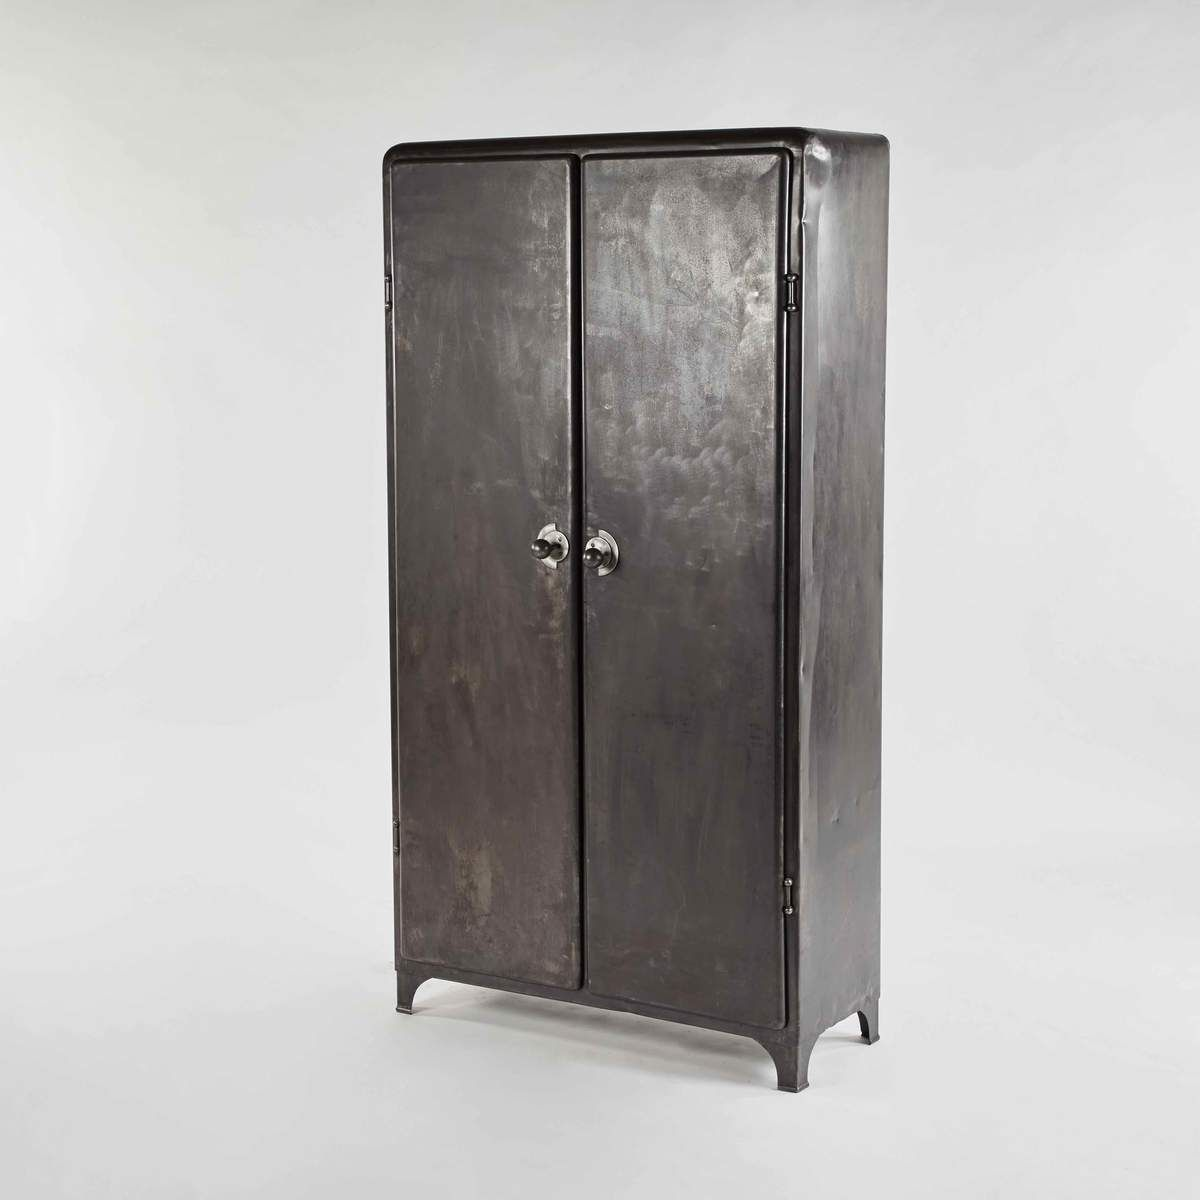 An Industrial Metal Cabinet With Unique Ball Handles And Interior